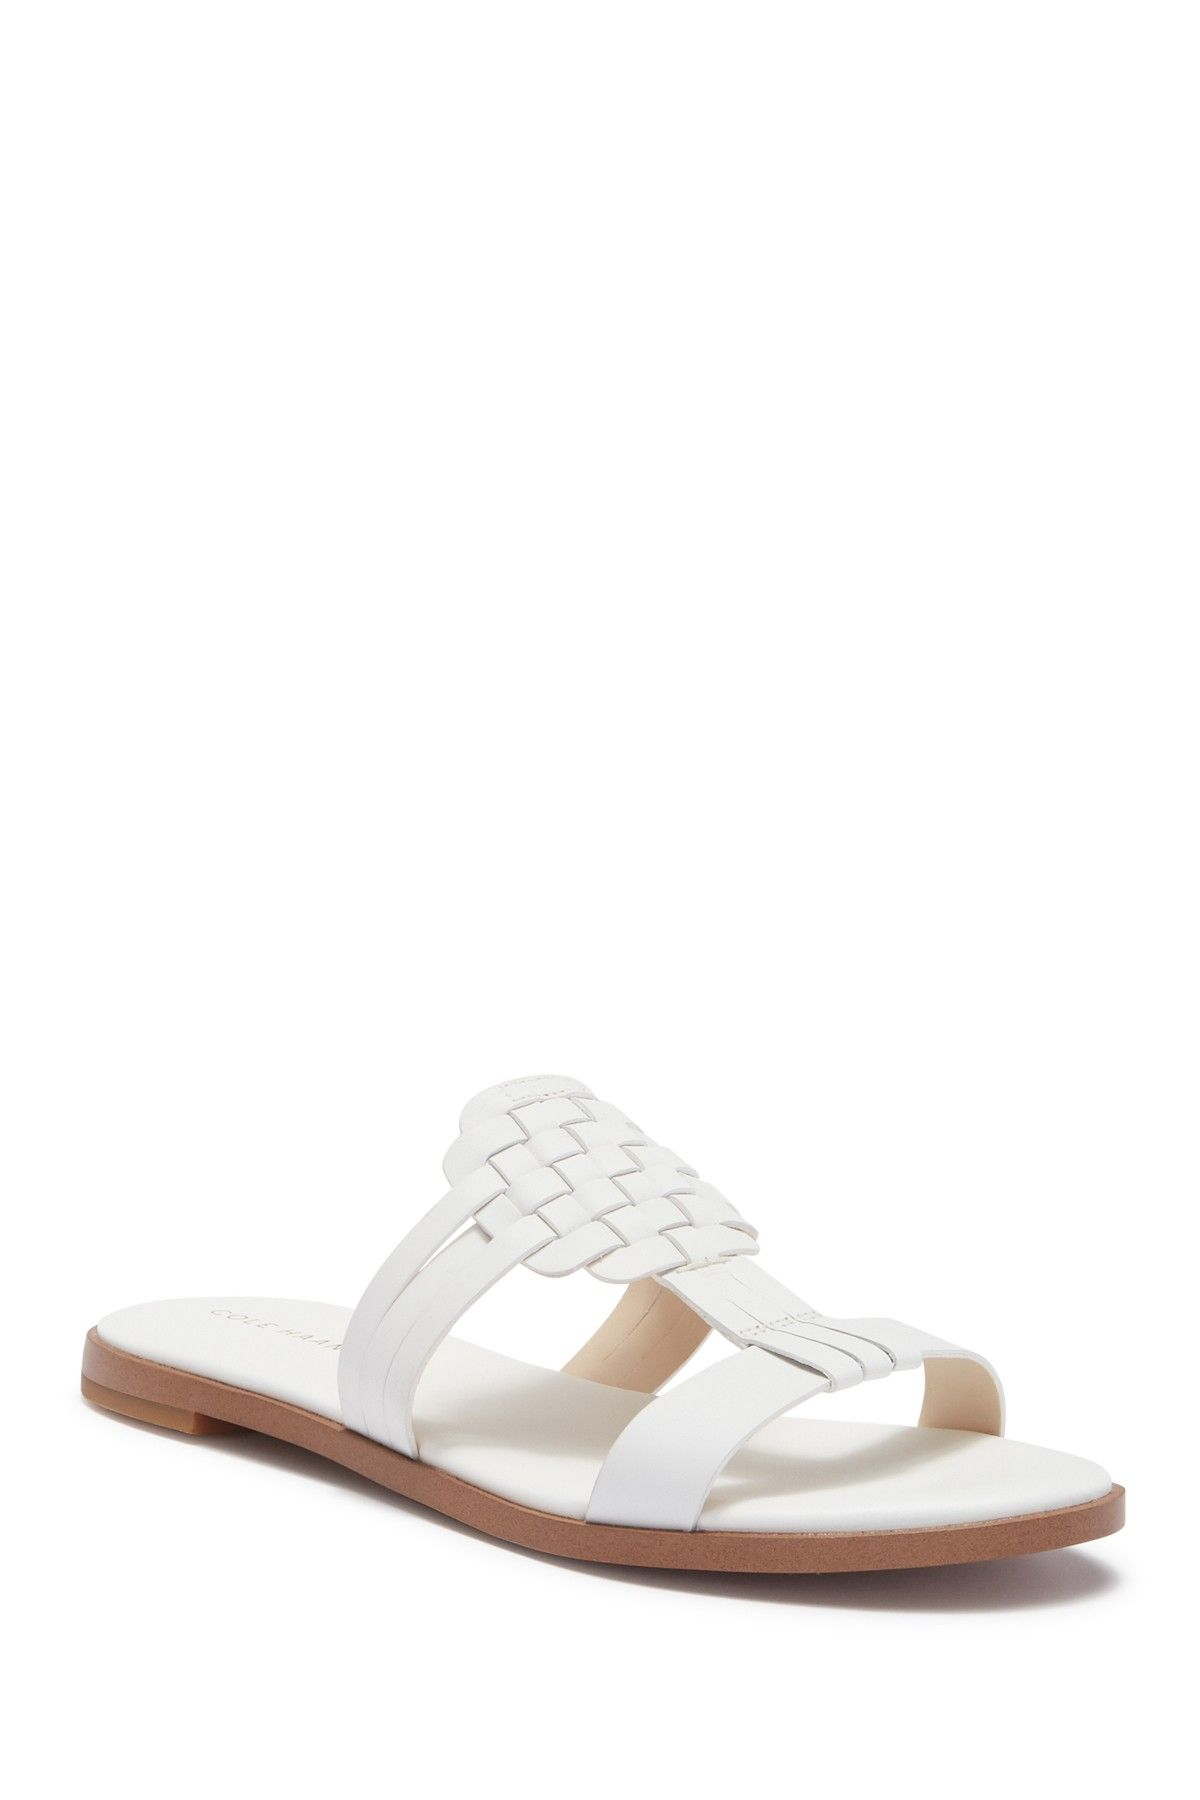 5cdae76bcfa Findra Woven Leather Sandal by Cole Haan on  nordstrom rack